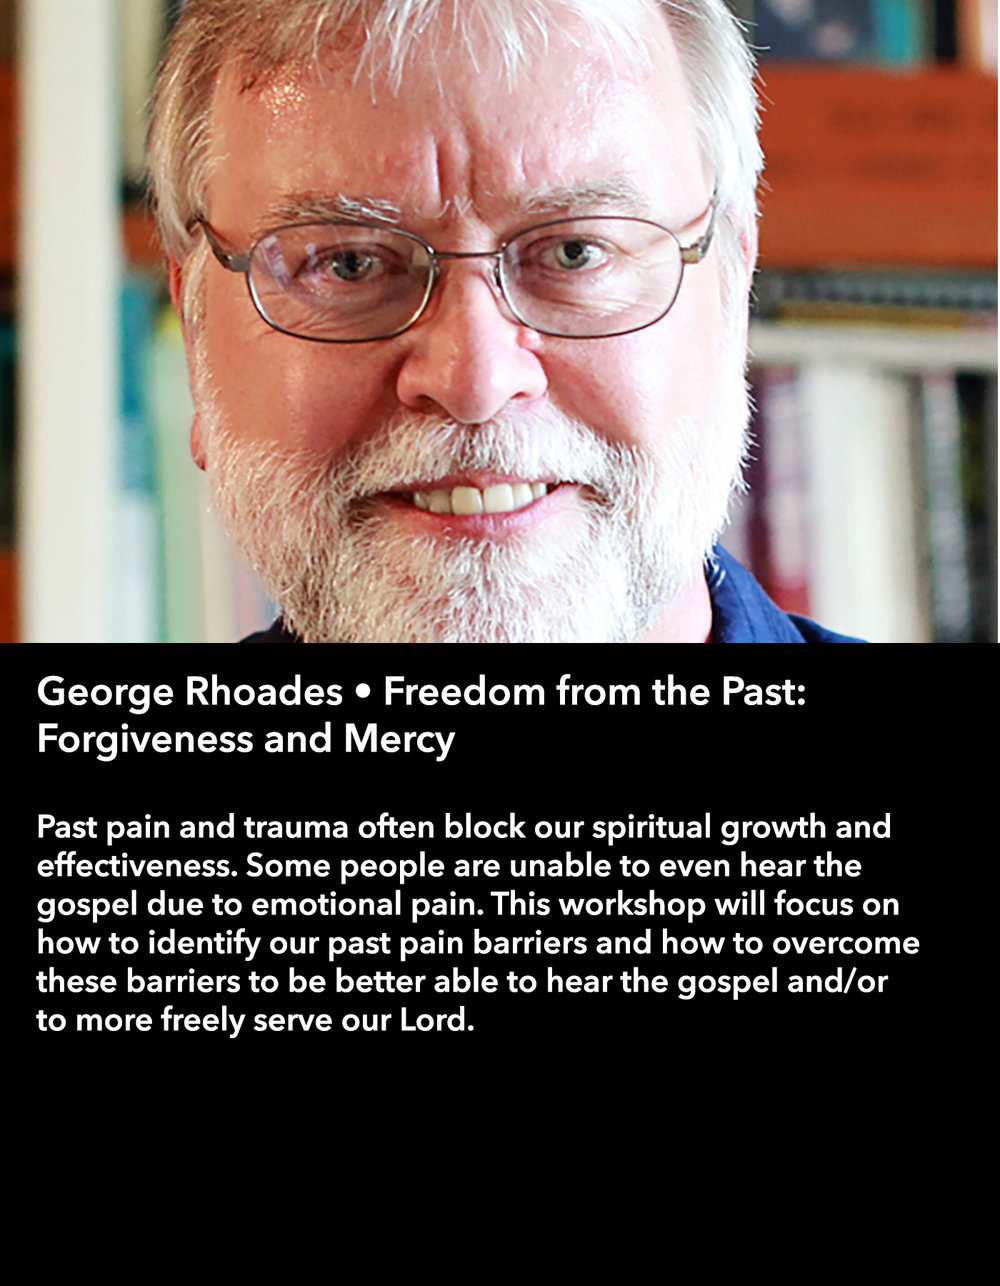 George Rhoades • Freedom from the Past: Forgiveness and Mercy • Friday Afternoon, March 17 • 3:30 – 4:45 pm